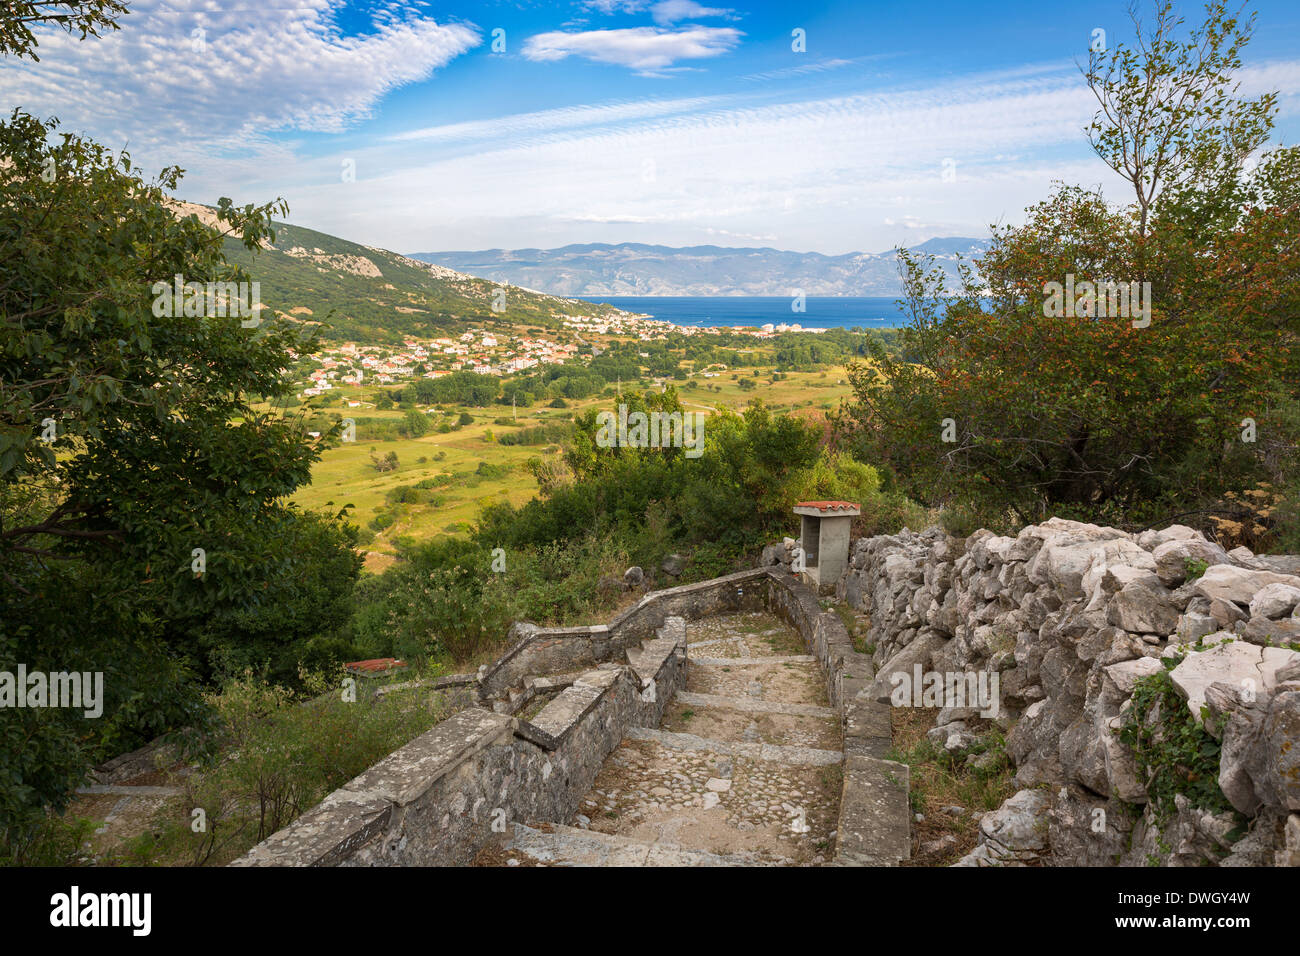 Bay in Krk Island with view to Baska, Croatia - Stock Image